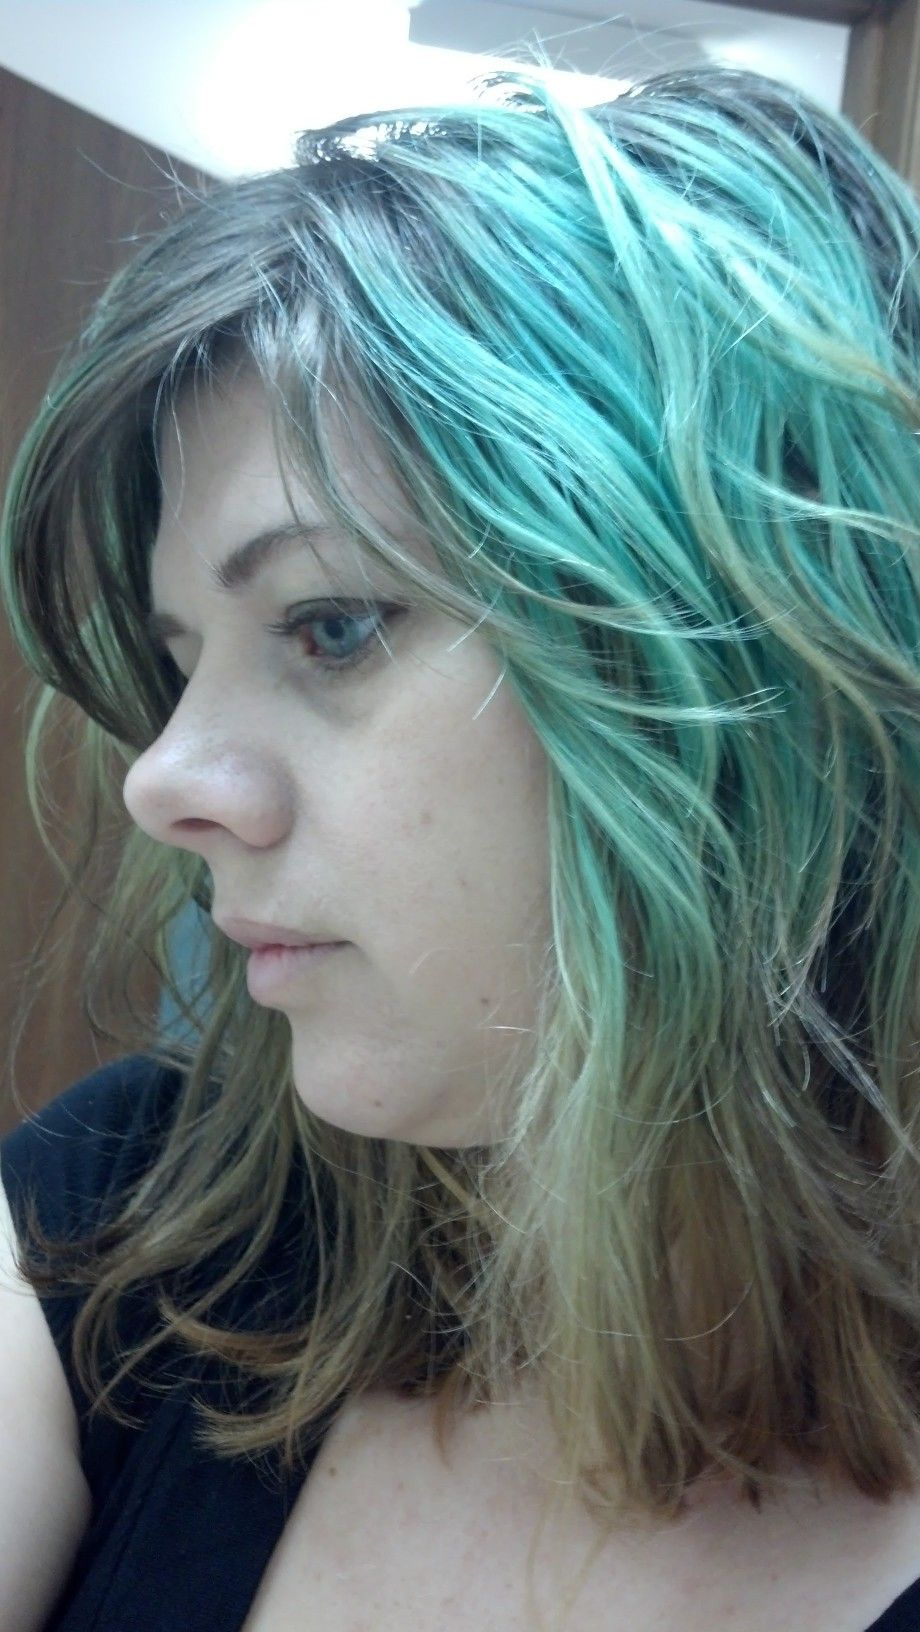 Faded Blue Over Older Blue Green And Green Colored Highlights Dyed Hair Hair Styles